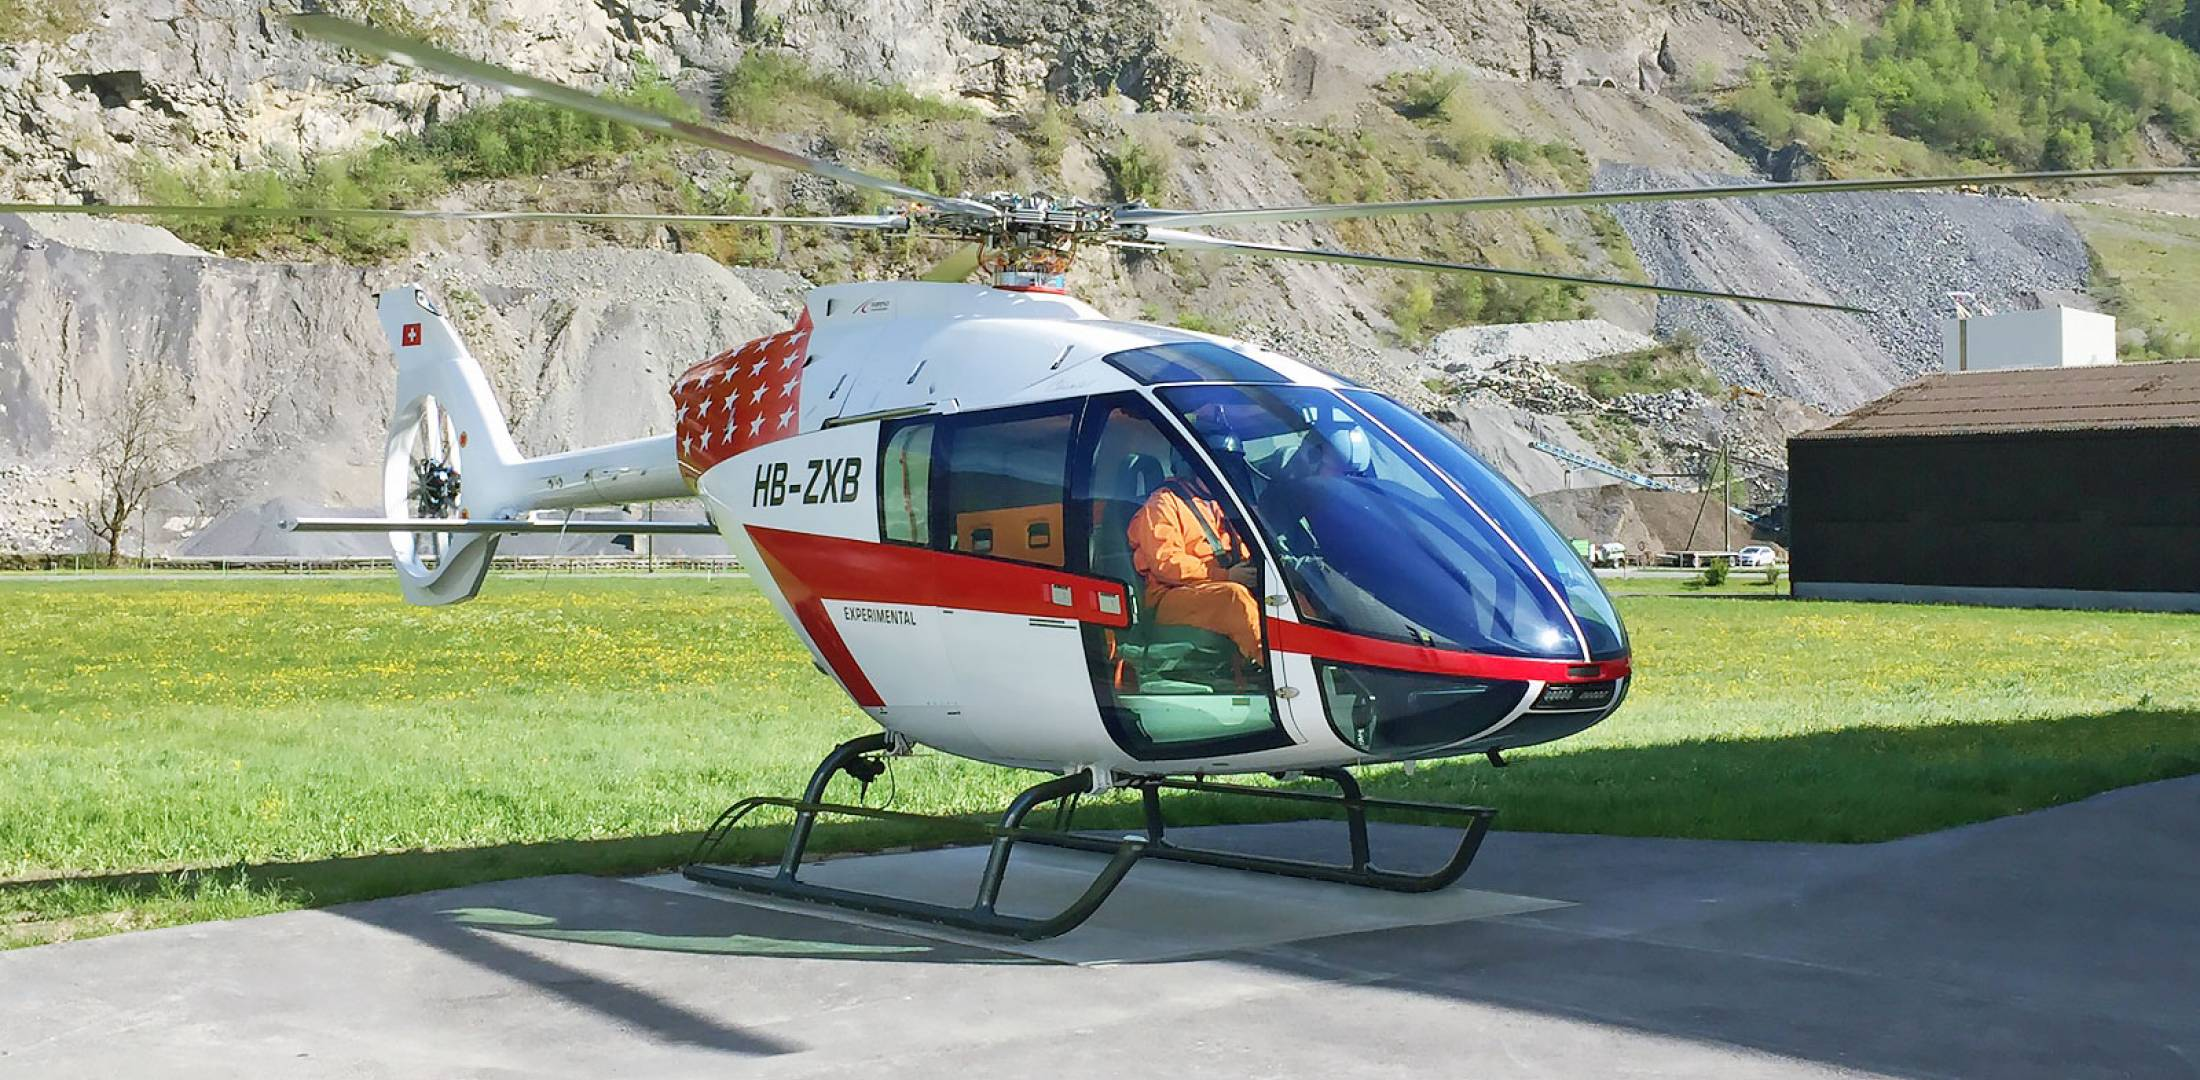 business helicopters with Marenco Steps Flight Testing New Sh09 Helicopter on Istanbulsky in addition Genoa Jet Charters Charter Flights To Italy likewise Paris Le Bourget Airport also Luxury Helicopter To Debut At Monaco Yacht Show Bell 525 Relentless in addition Pictures Bombardier Global 7000 First Flight 435.